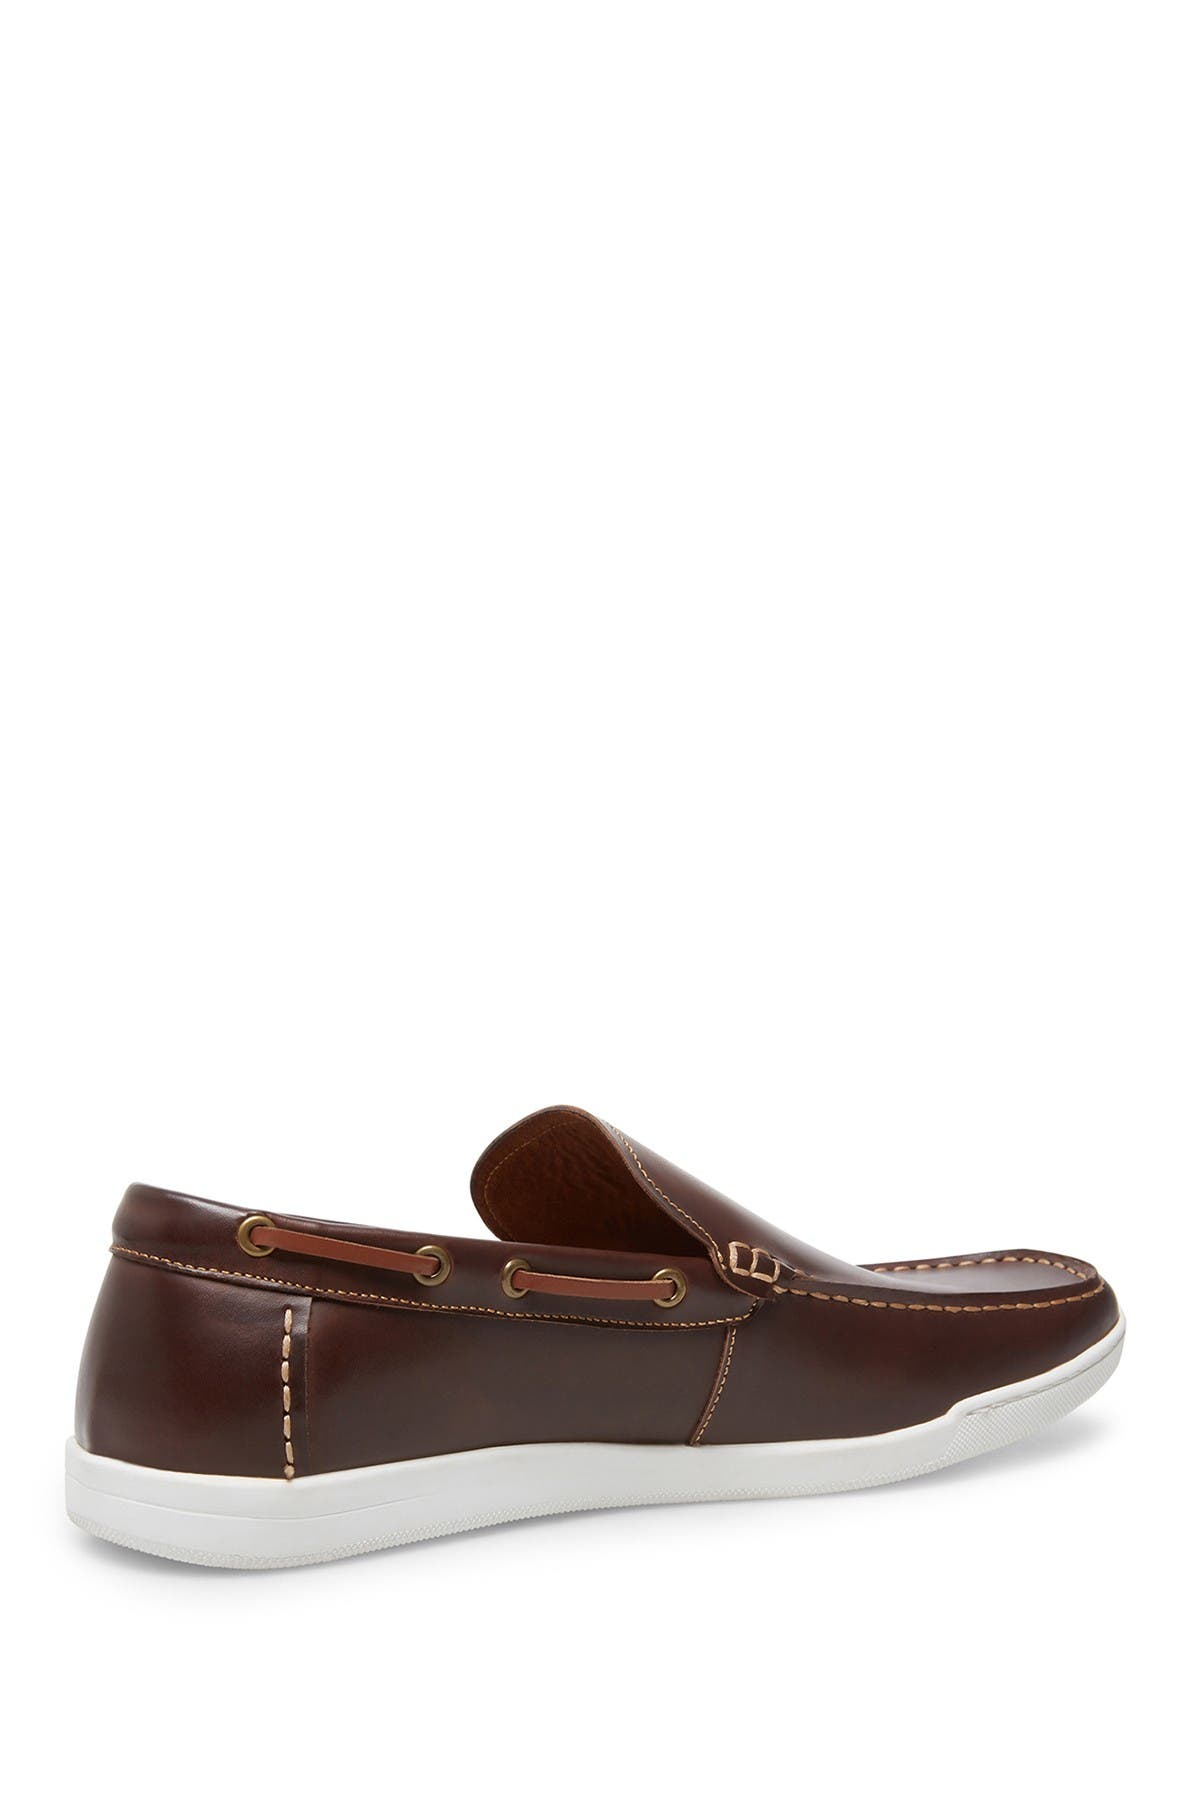 Image of Steve Madden Revenge Leather Slip-On Sneaker